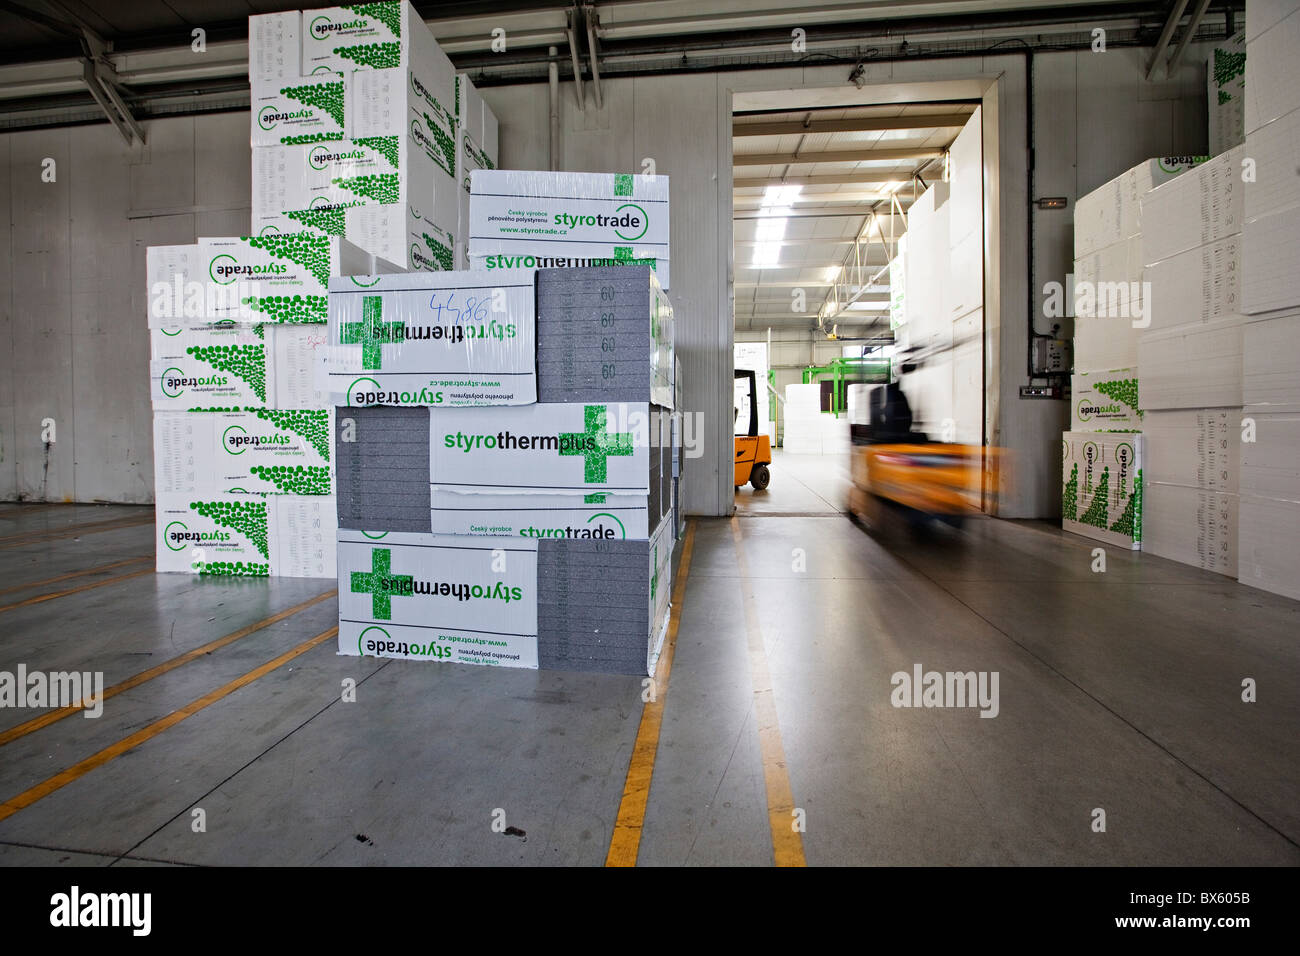 polystyrene packaging material stockfotos polystyrene packaging material bilder alamy. Black Bedroom Furniture Sets. Home Design Ideas